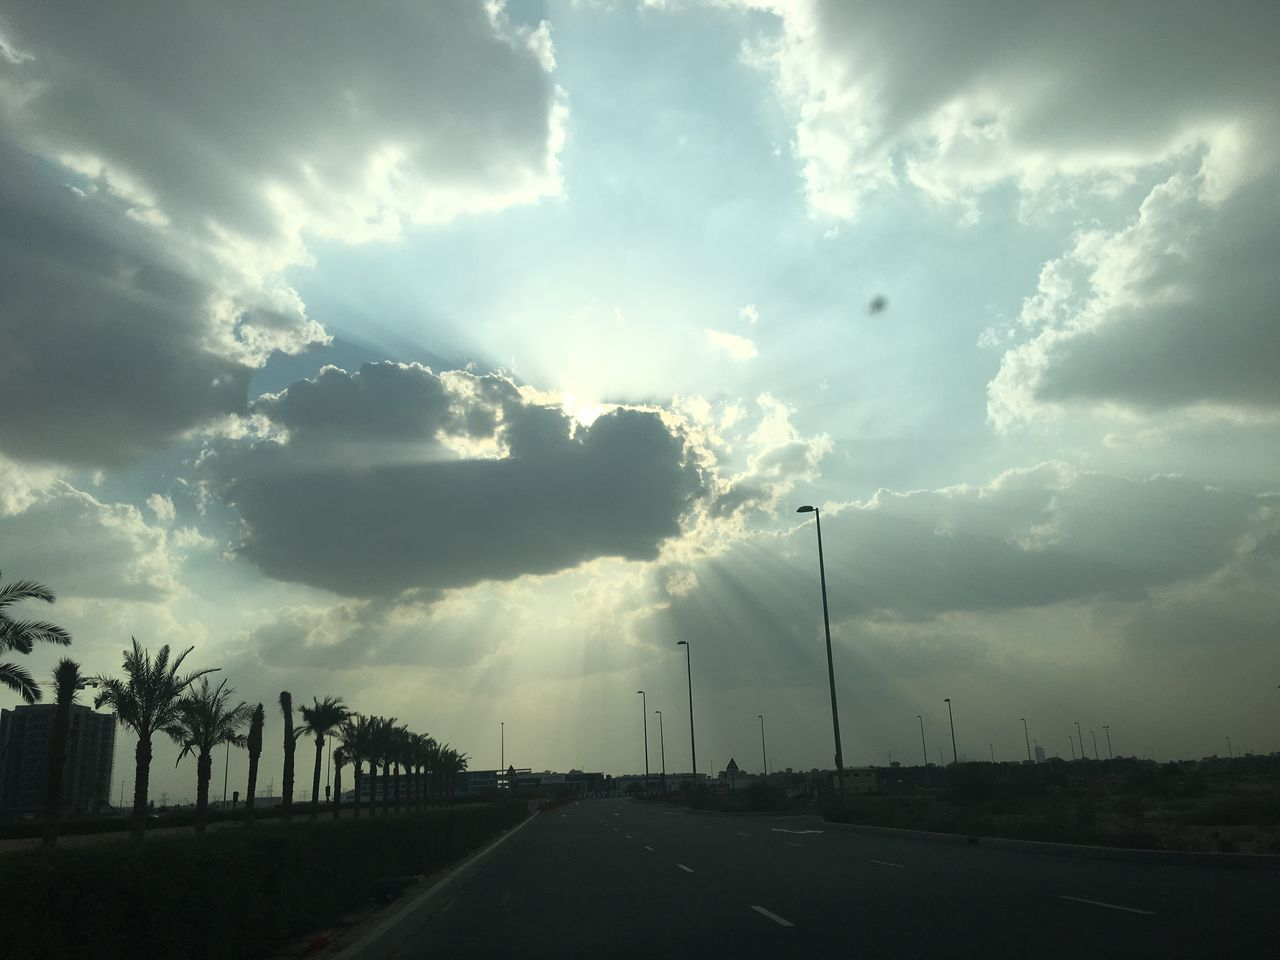 cloud - sky, road, sky, the way forward, transportation, outdoors, no people, tree, nature, scenics, day, storm cloud, beauty in nature